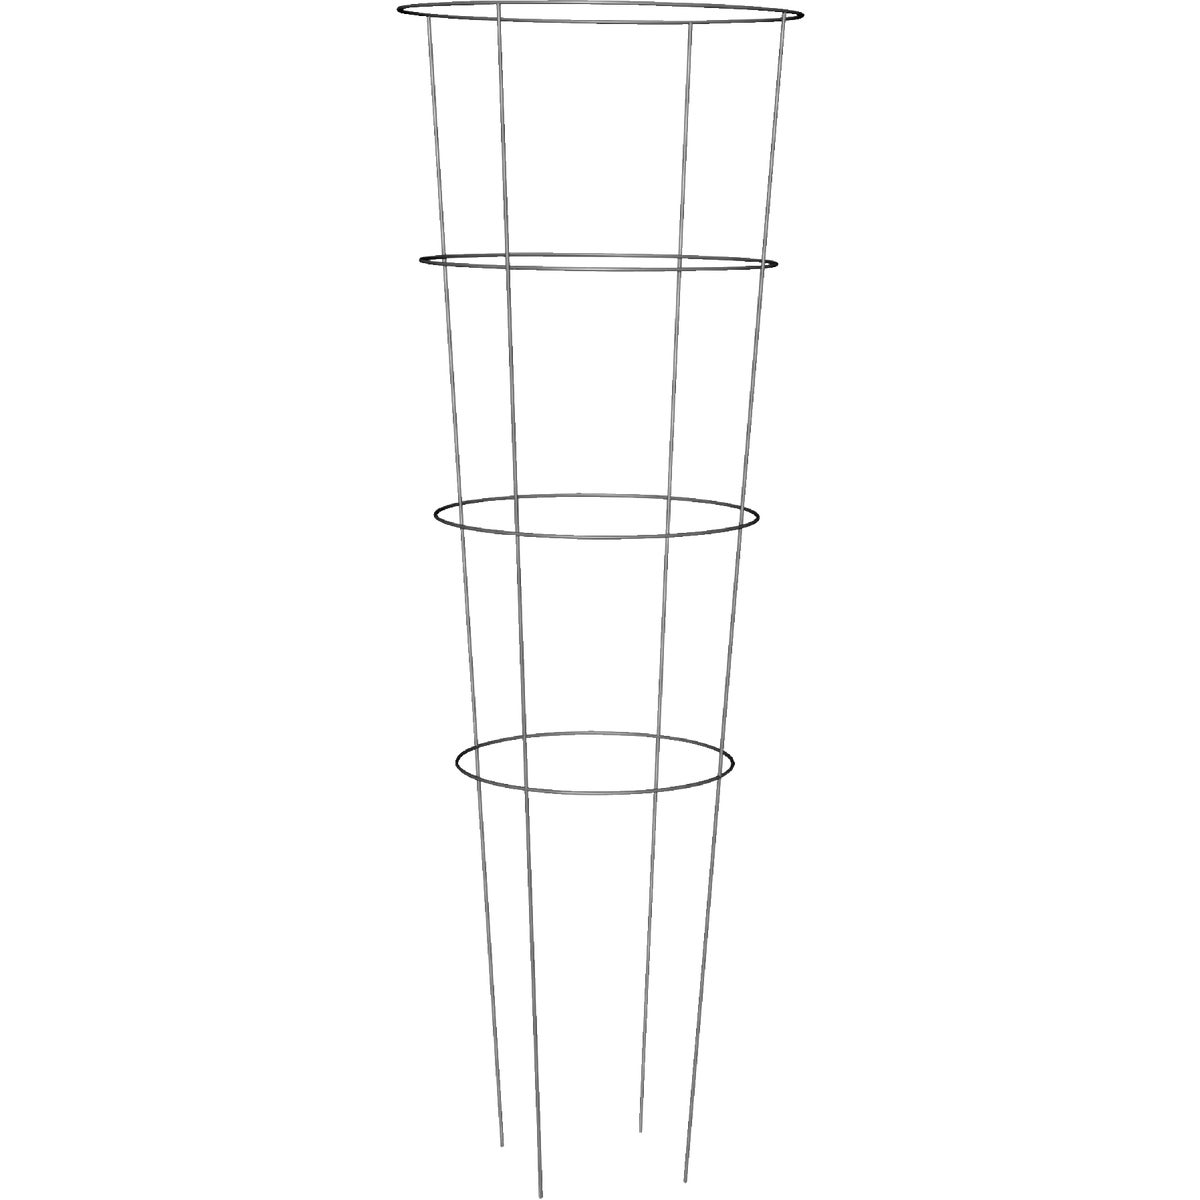 """4R/4L 54"""" TOMATO CAGE - 89726 by Panacea Products"""